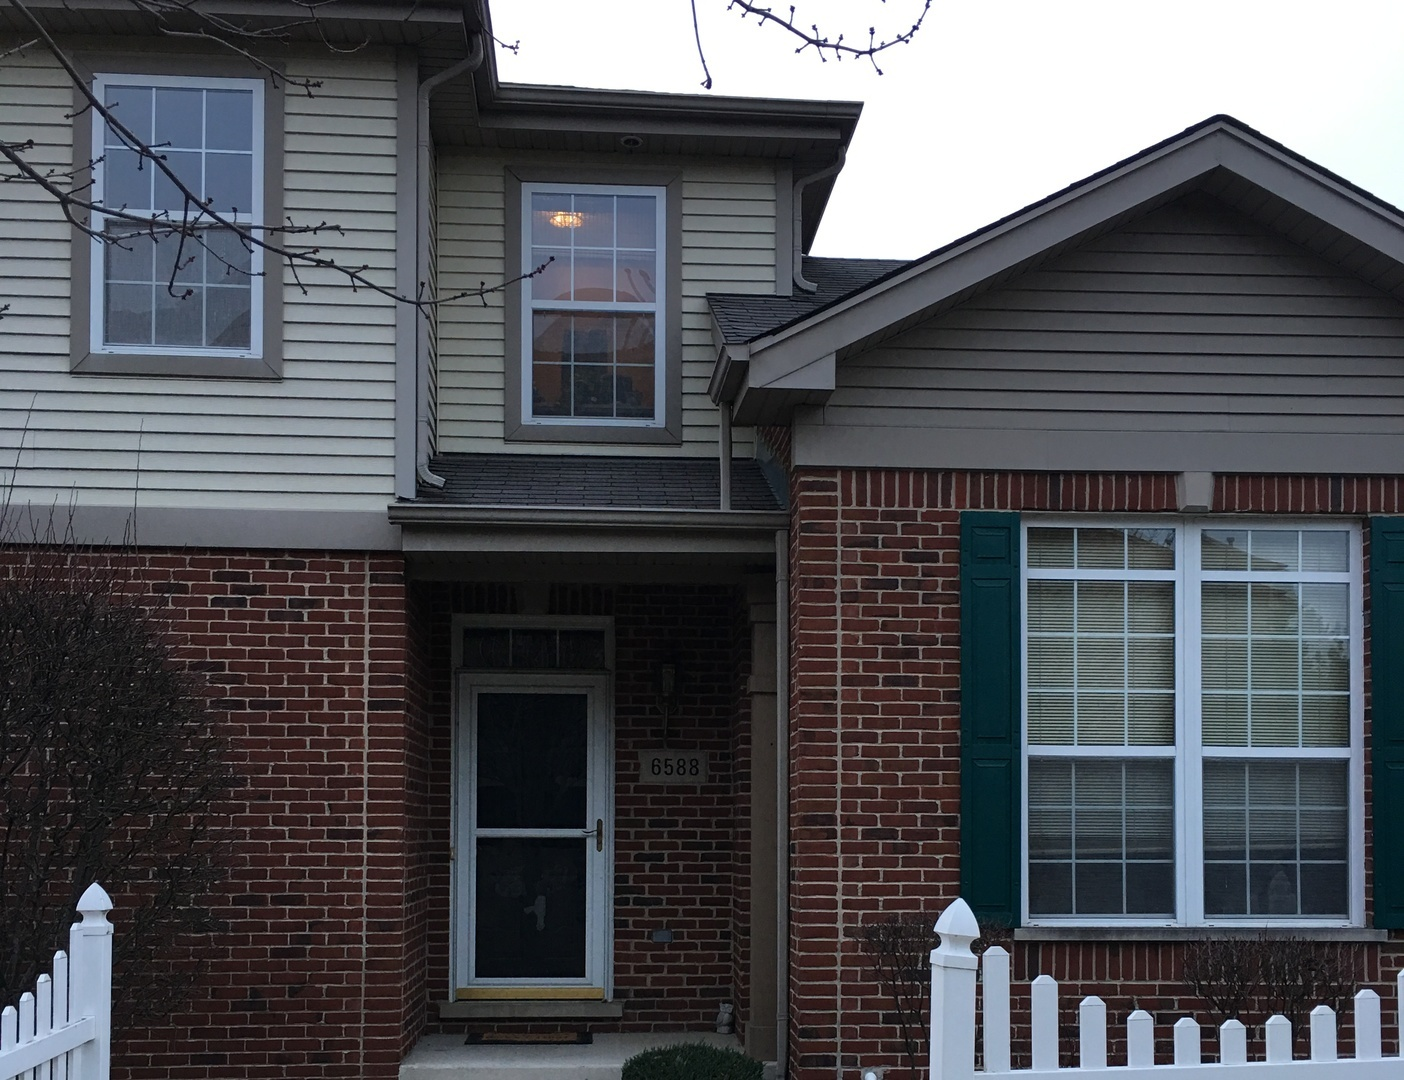 6588 Pine Lake Drive, Tinley Park in Cook County, IL 60477 Home for Sale